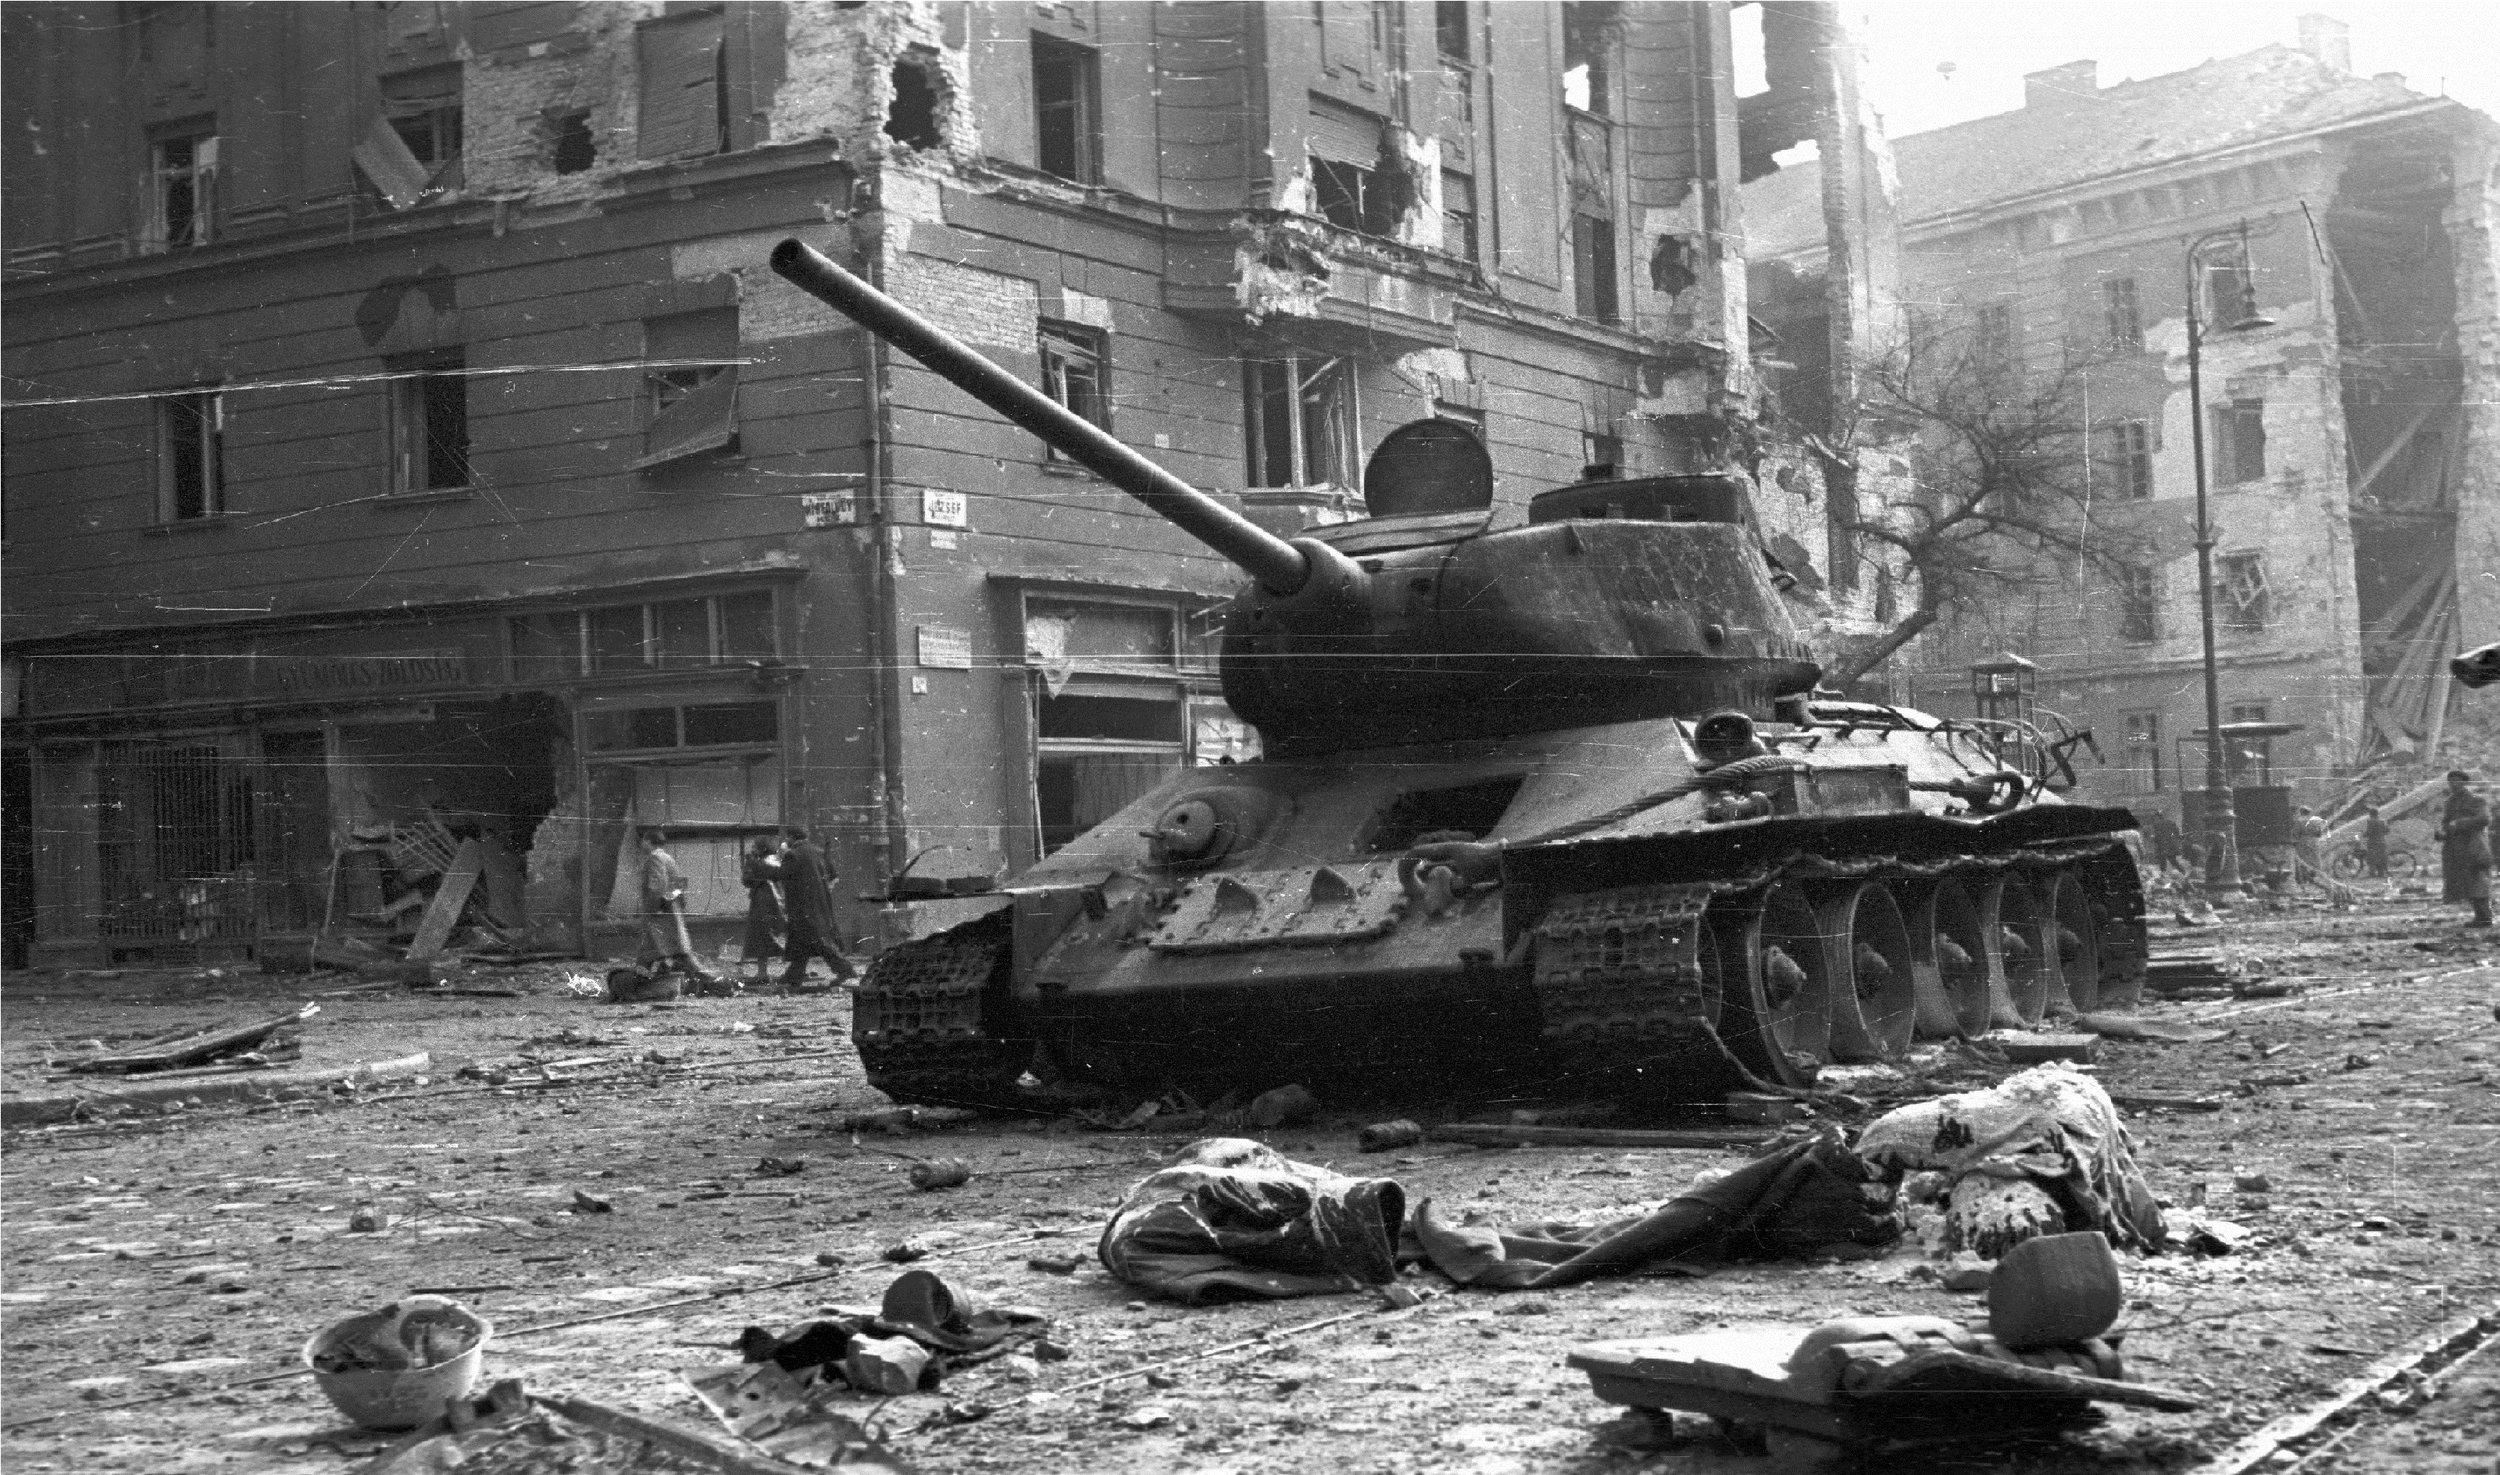 Soviet might saw Budapest blown to smithereens, as cynicism and prestige were on full display.